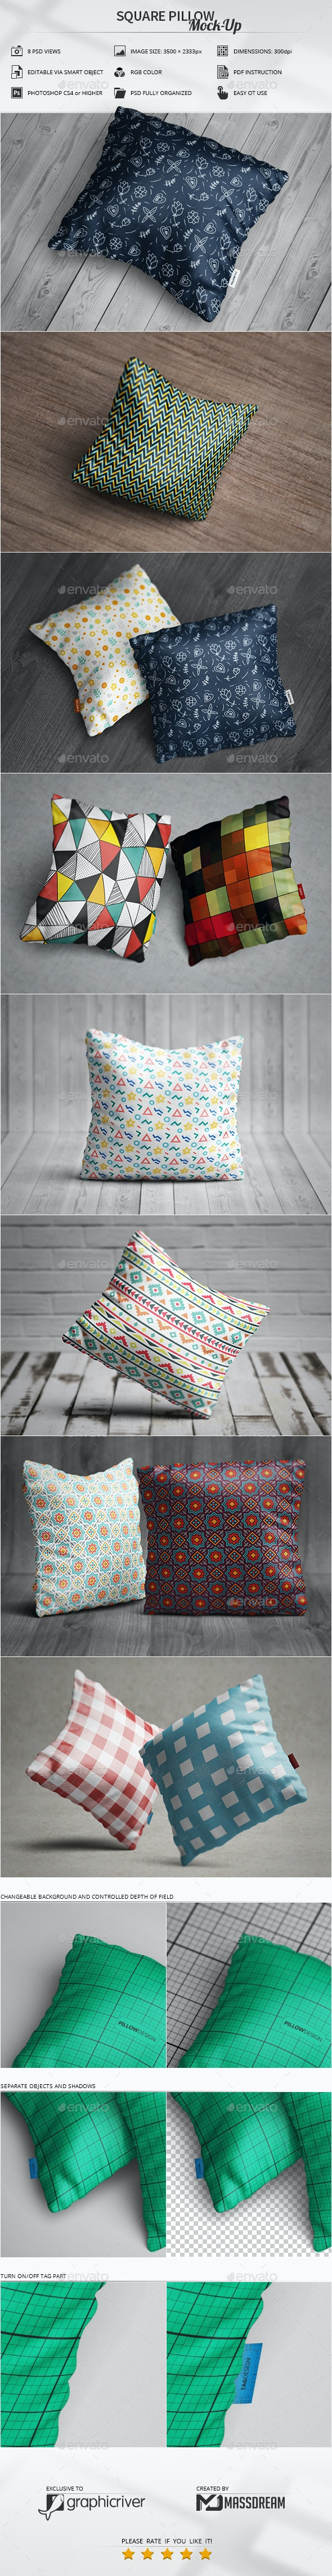 Square Pillow Mock-Up - Apparel Product Mock-Ups